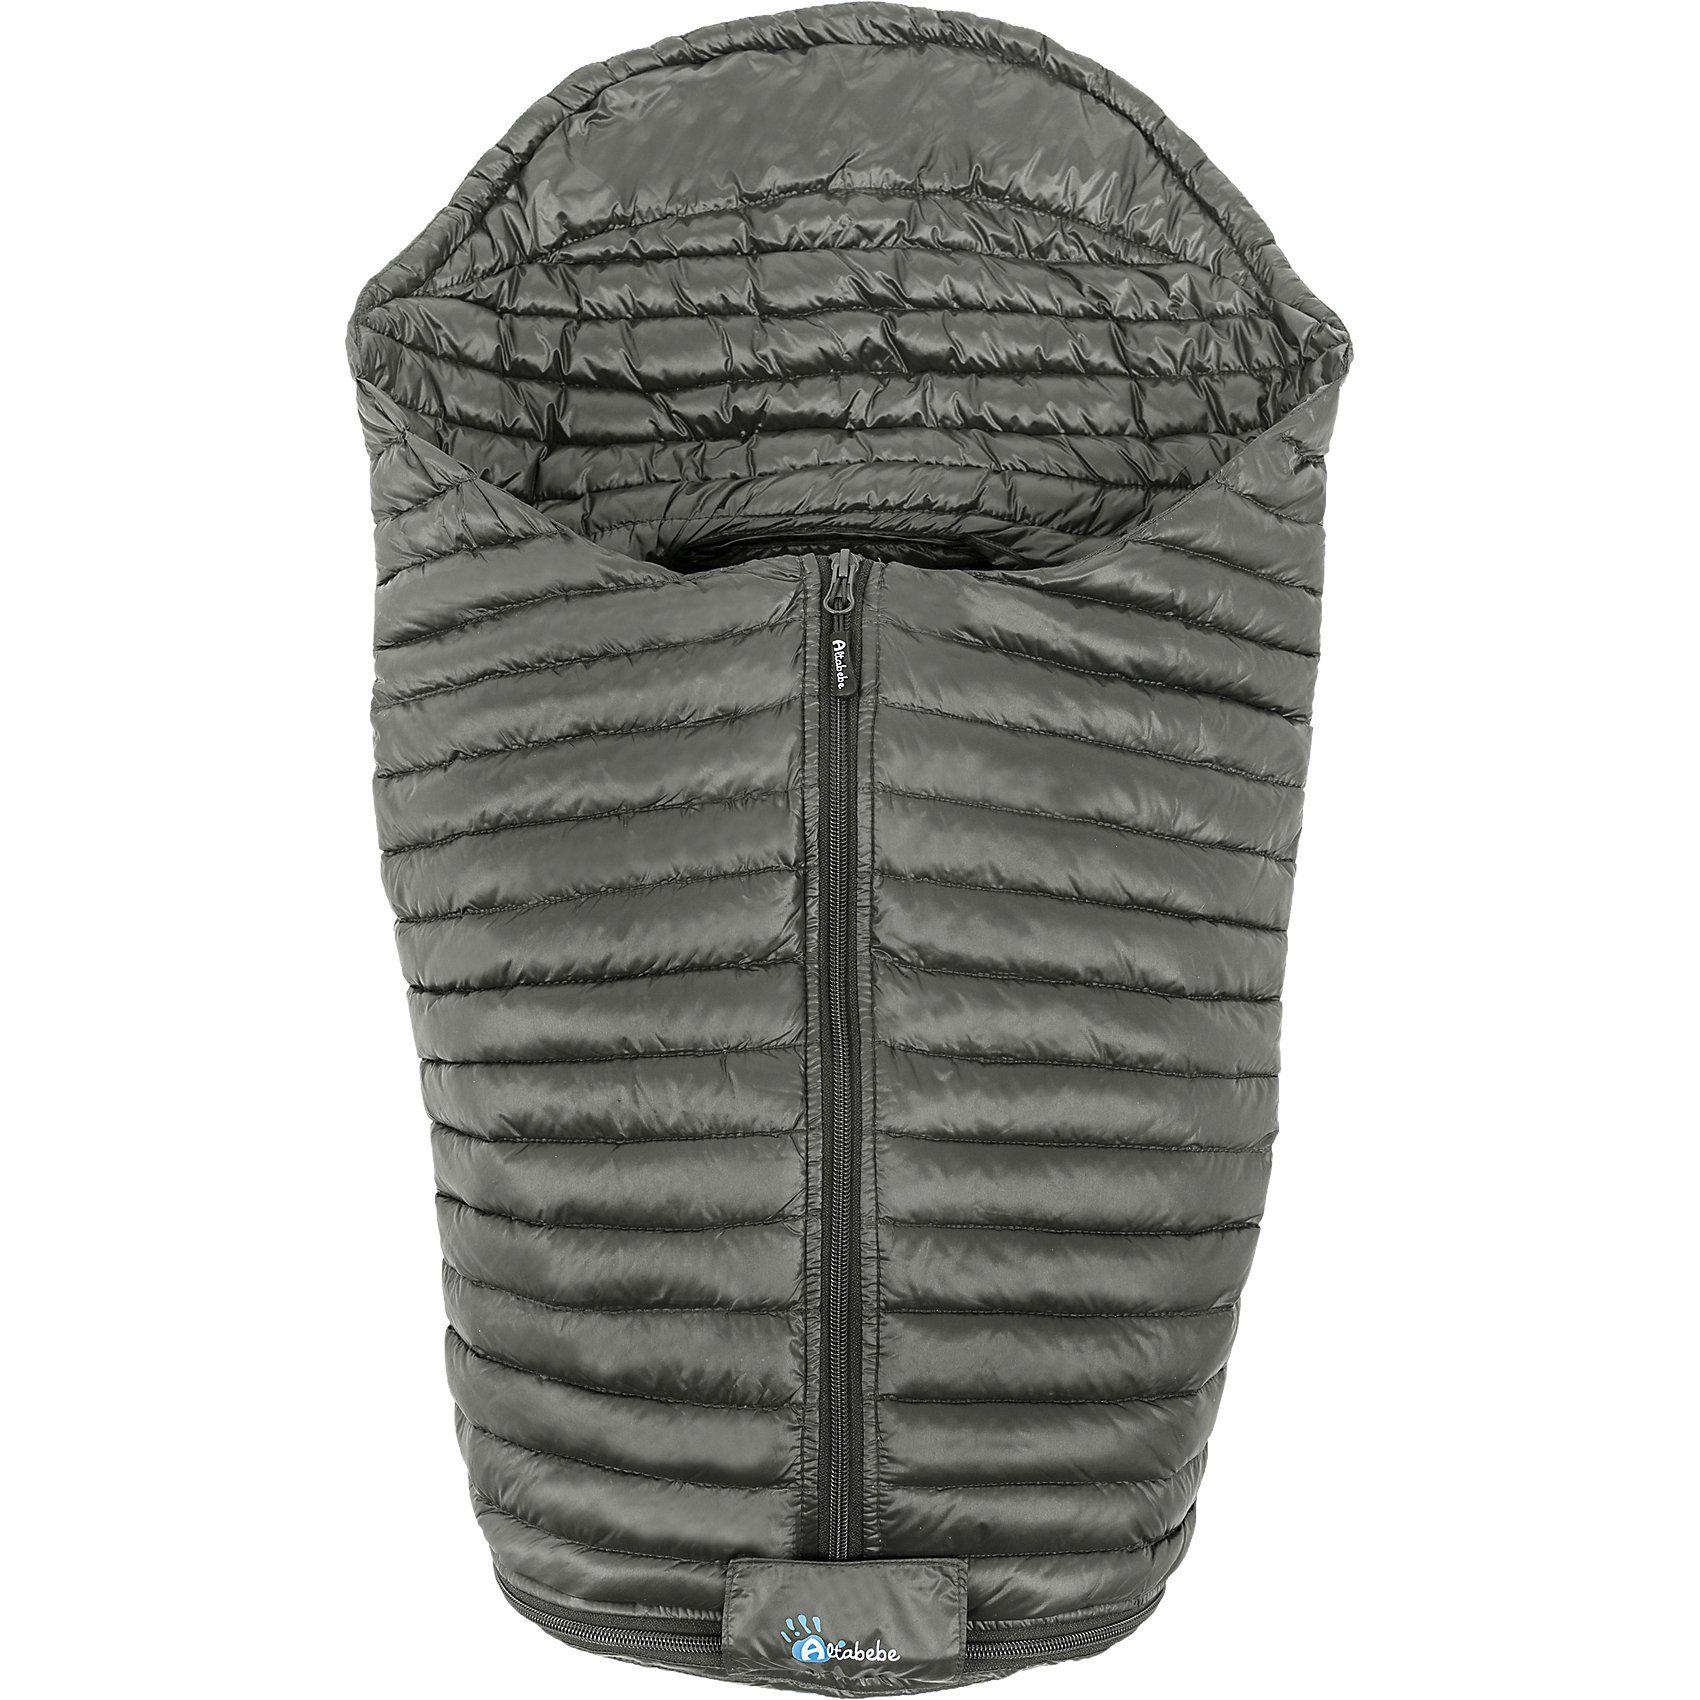 Altabebe All year footmuff Ultra Light Down Babyschale, grey